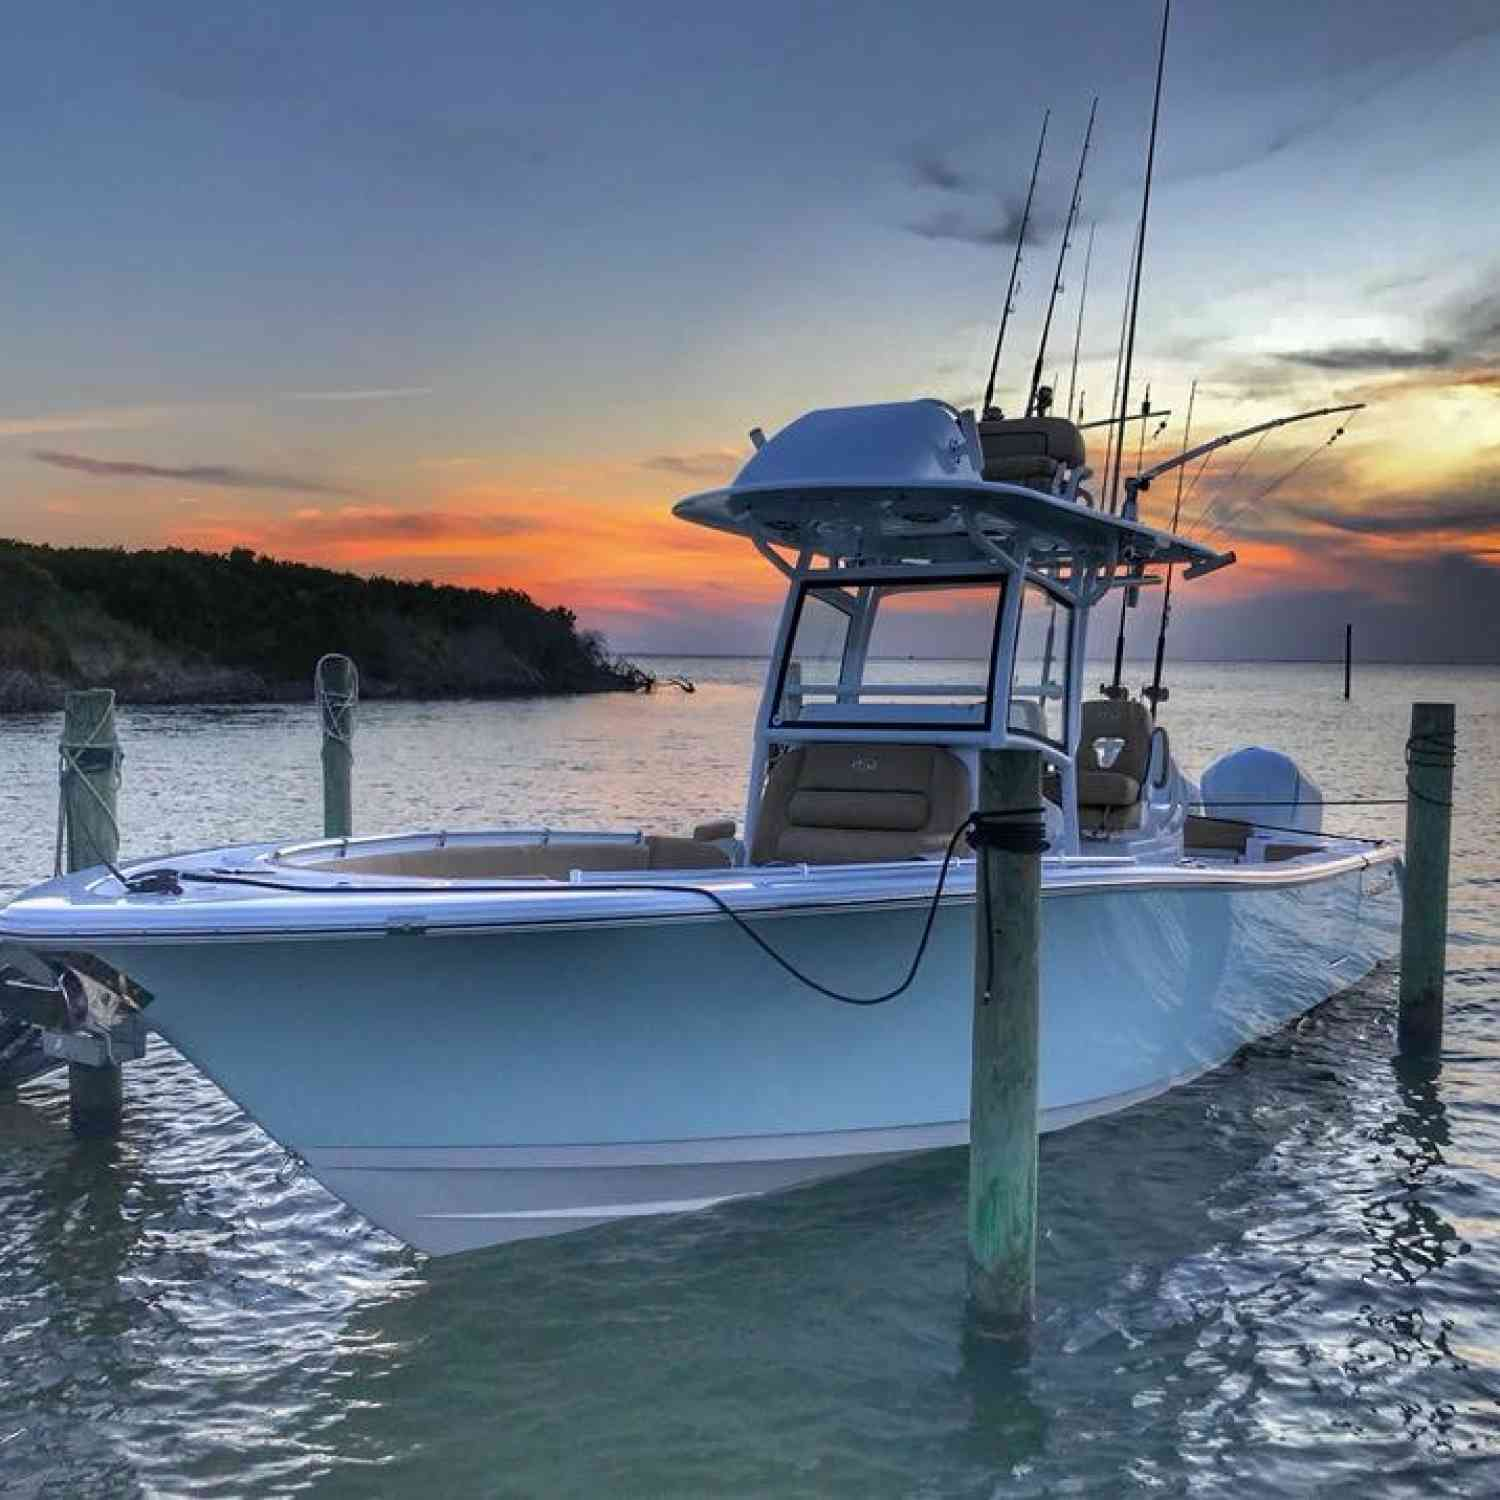 Title: CTO island - On board their Sportsman Open 282TE Center Console - Location: Manteo NC. Participating in the Photo Contest #SportsmanSeptember2018